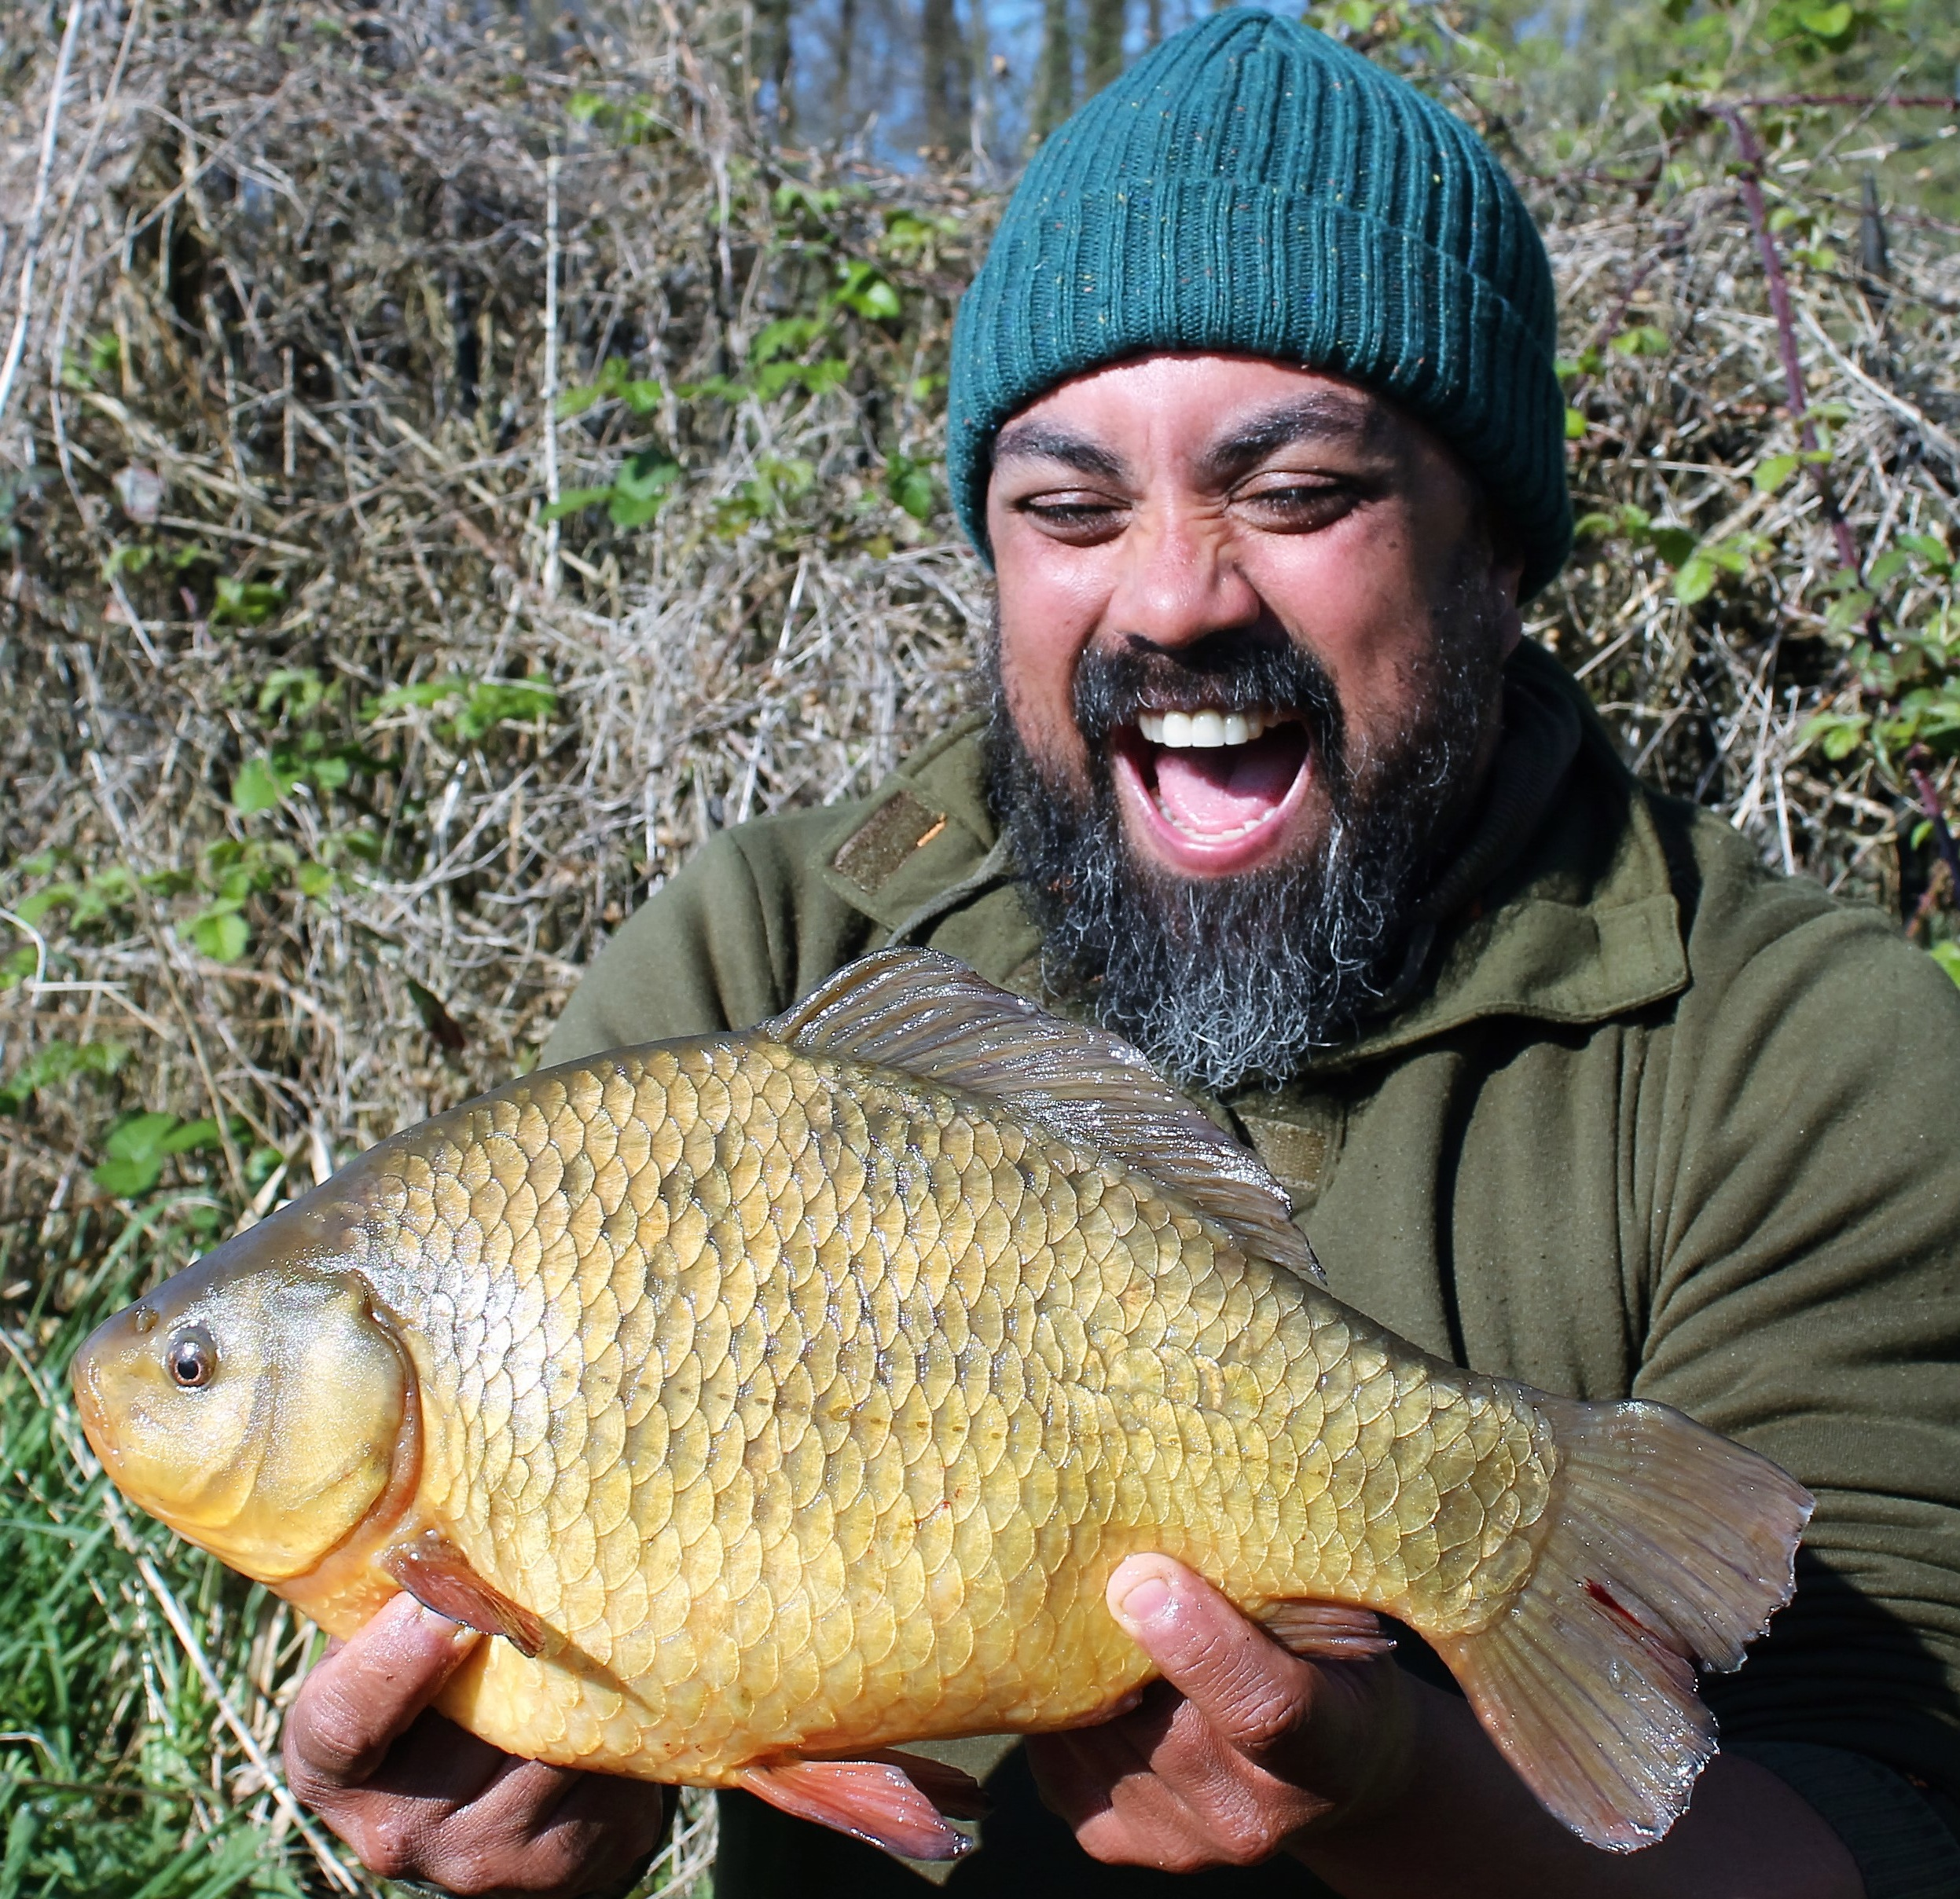 How to catch a crucian carp on a float rod - advice from anglers 32